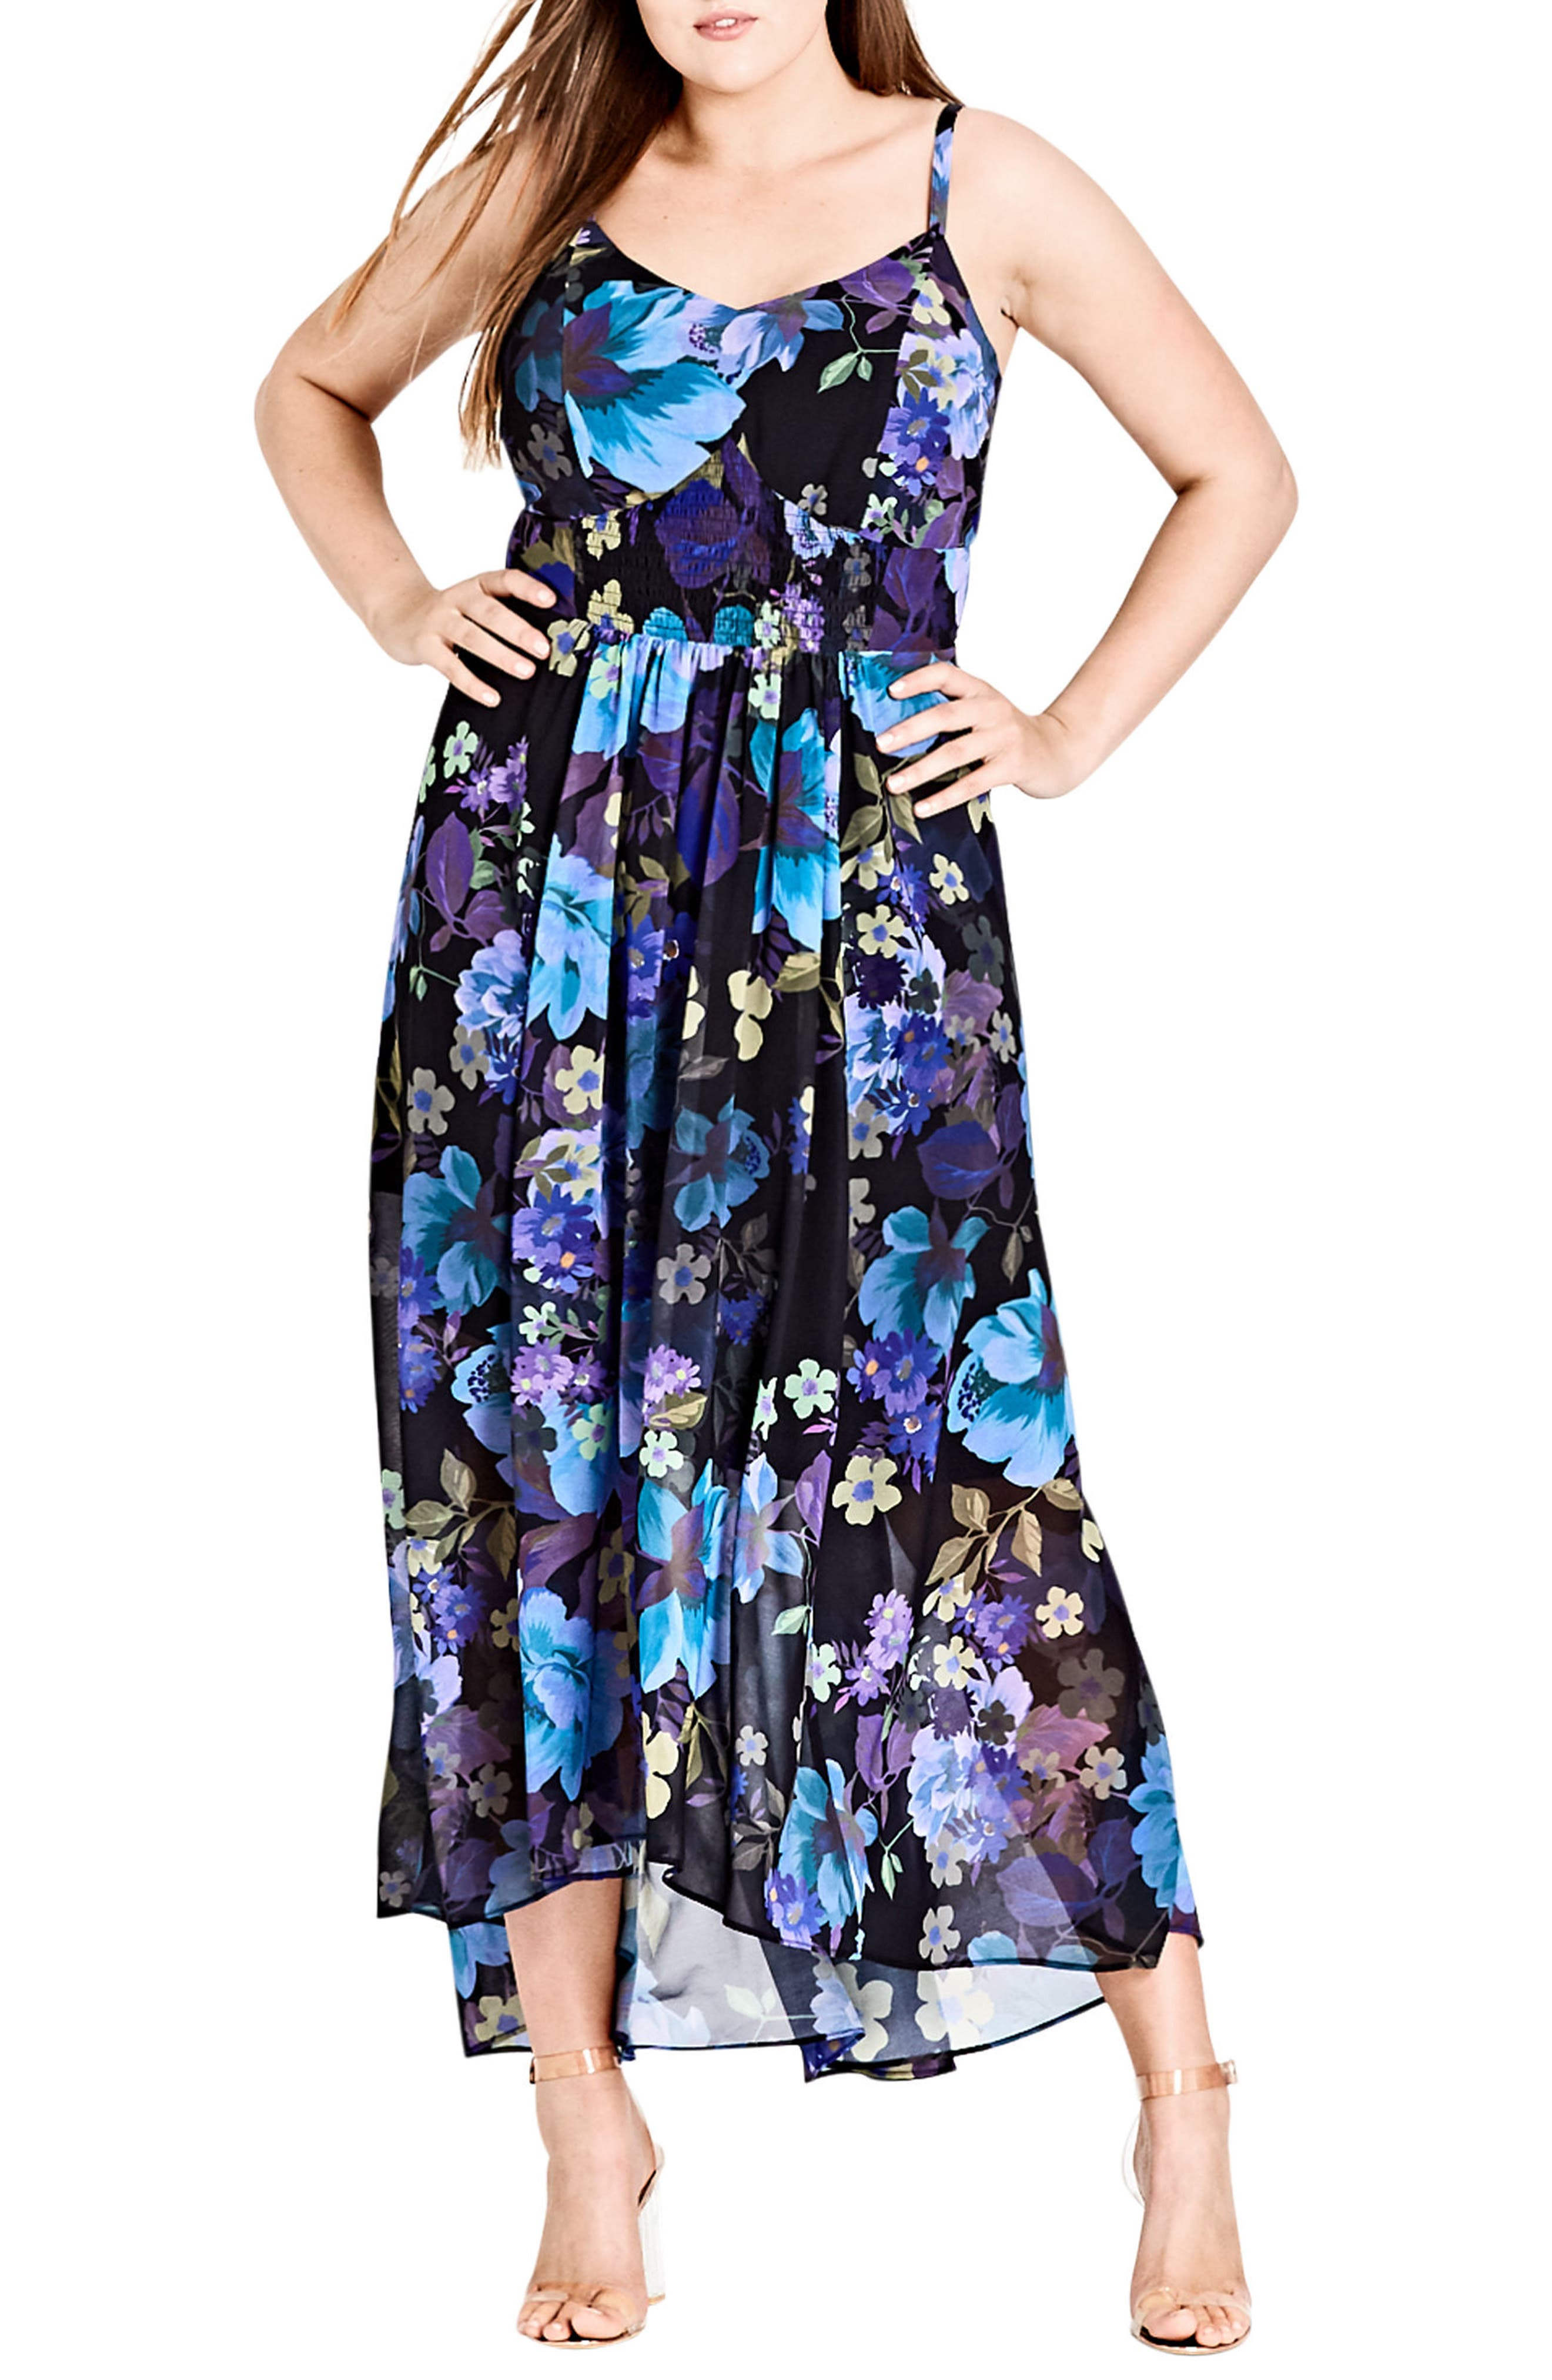 Chic City Falling Floral Maxi Dress,                             Main thumbnail 1, color,                             415